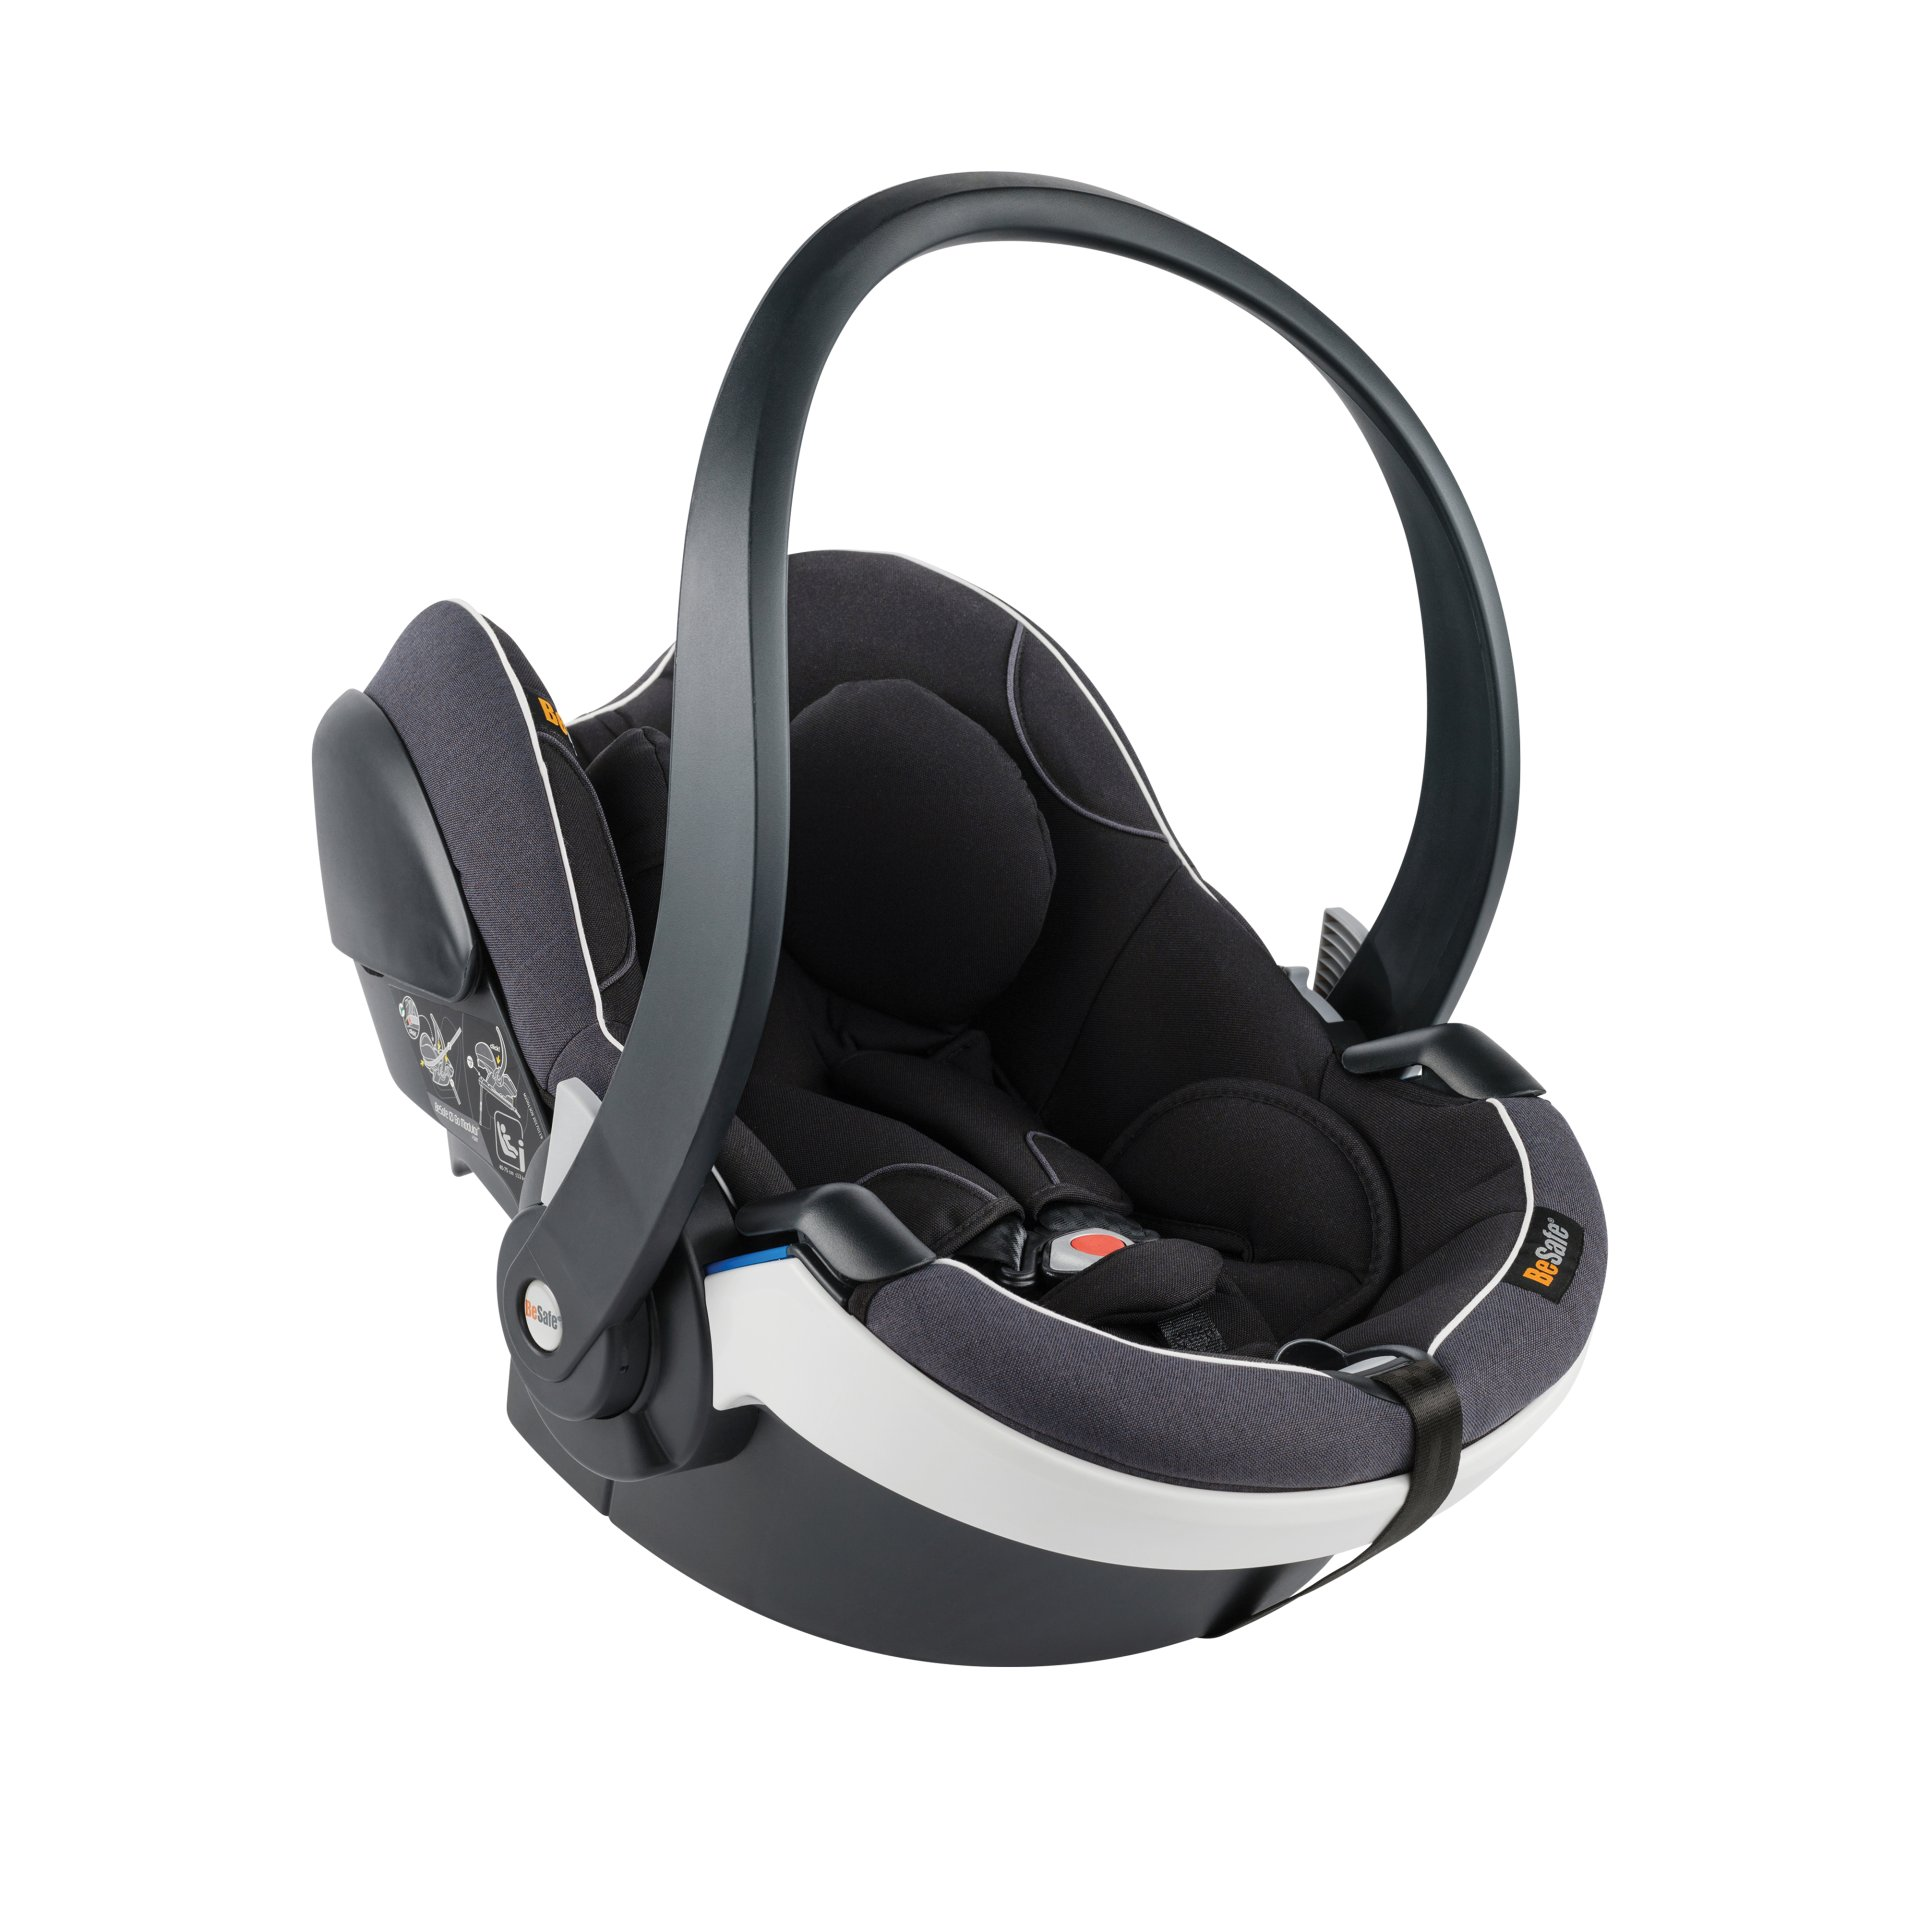 besafe infant car seat izi go modular i size buy at. Black Bedroom Furniture Sets. Home Design Ideas